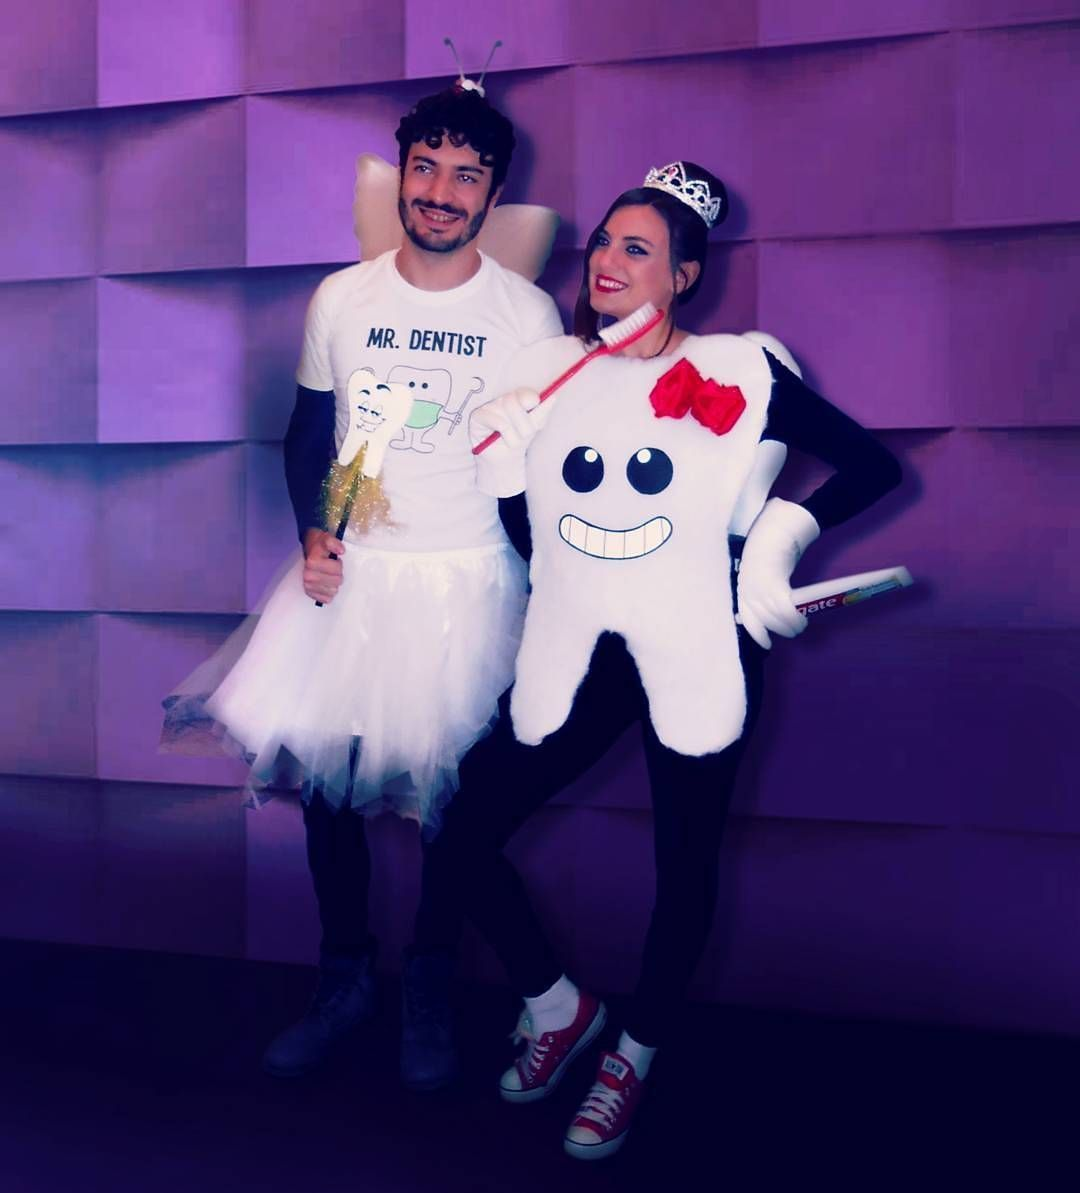 Halloween Costumes 2020 Tooth Fairys Couples Costume for Halloween » Best Ideas 2020 | maskerix.